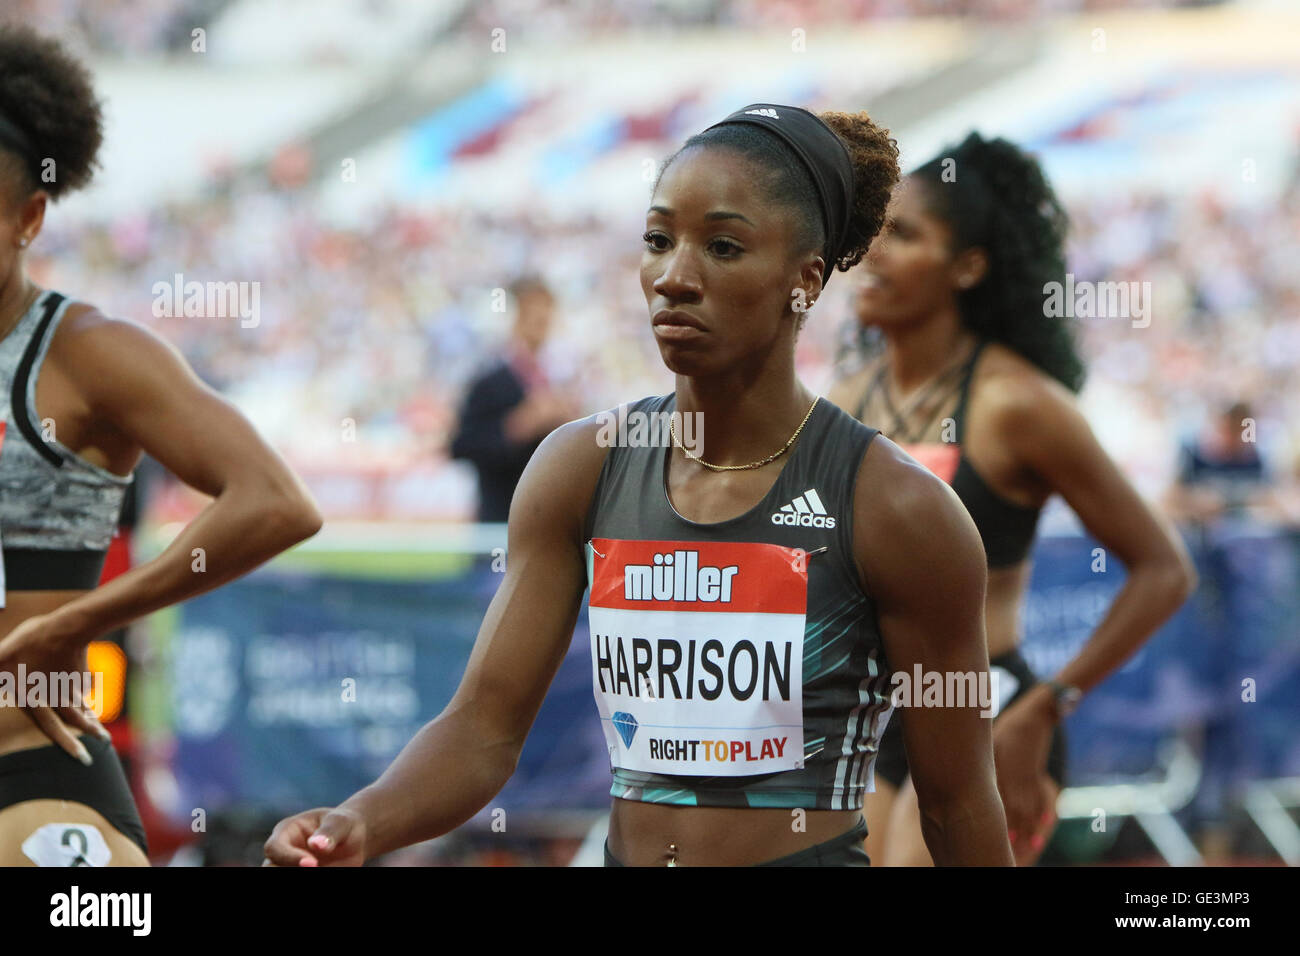 London, UK. 22nd July, 2016. IAAF Diamond League Anniversary Games. Harrison takes first place in the womens 100H - Stock Image